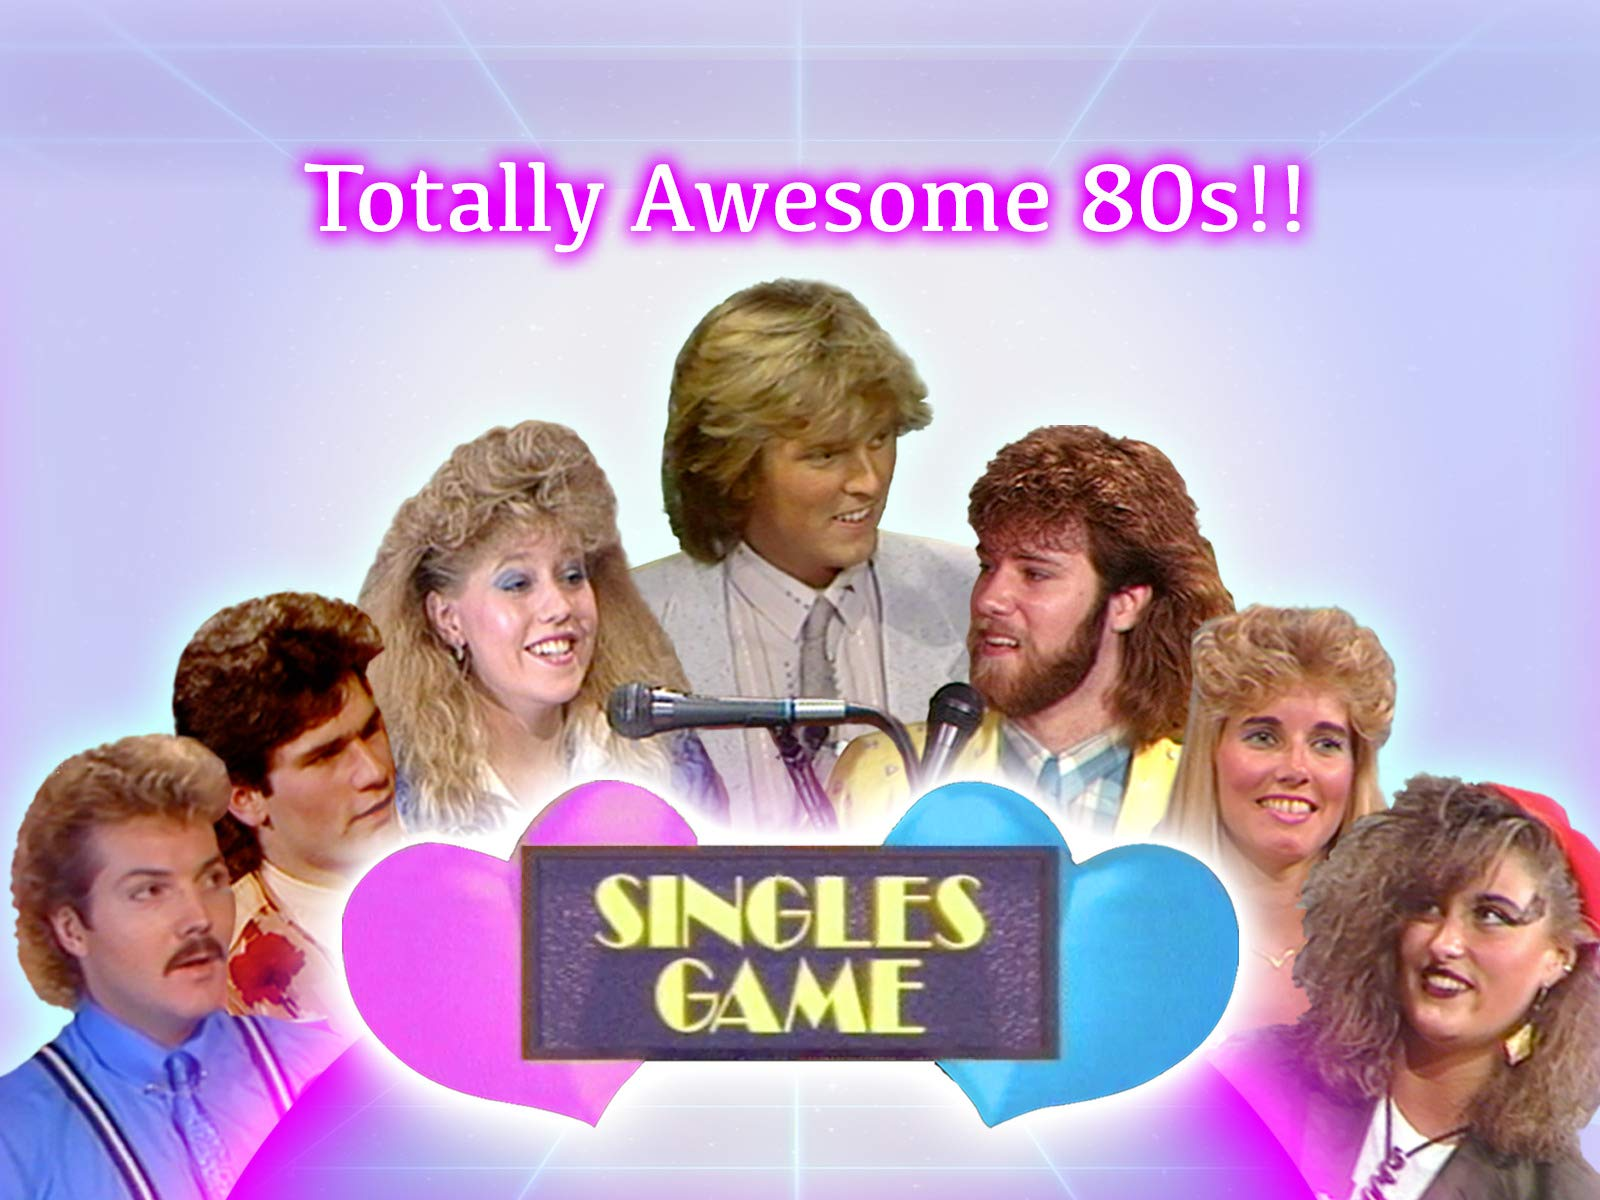 Totally Awesome 80s!! Singles Game